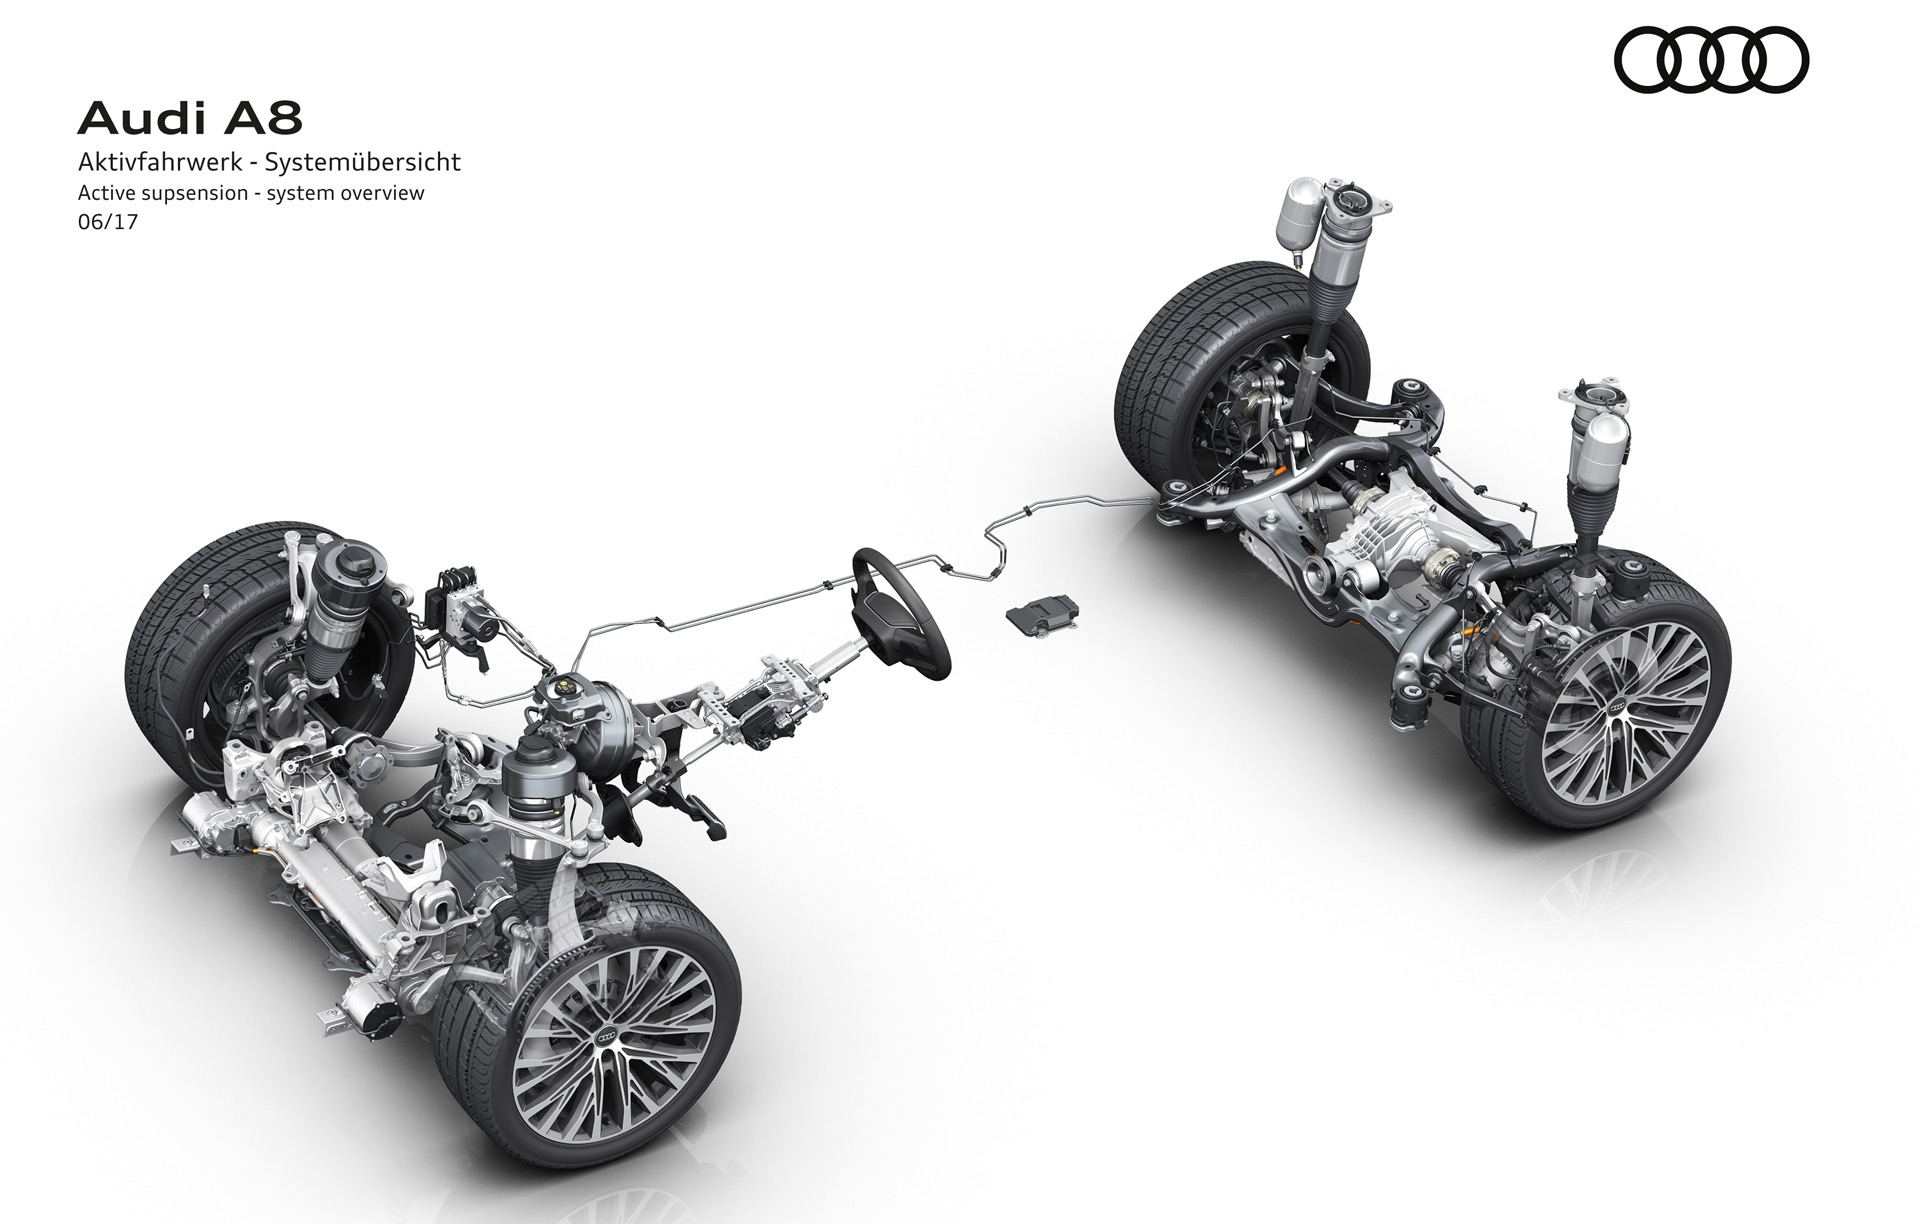 Audi Reveals New A8 S Chassis Technology